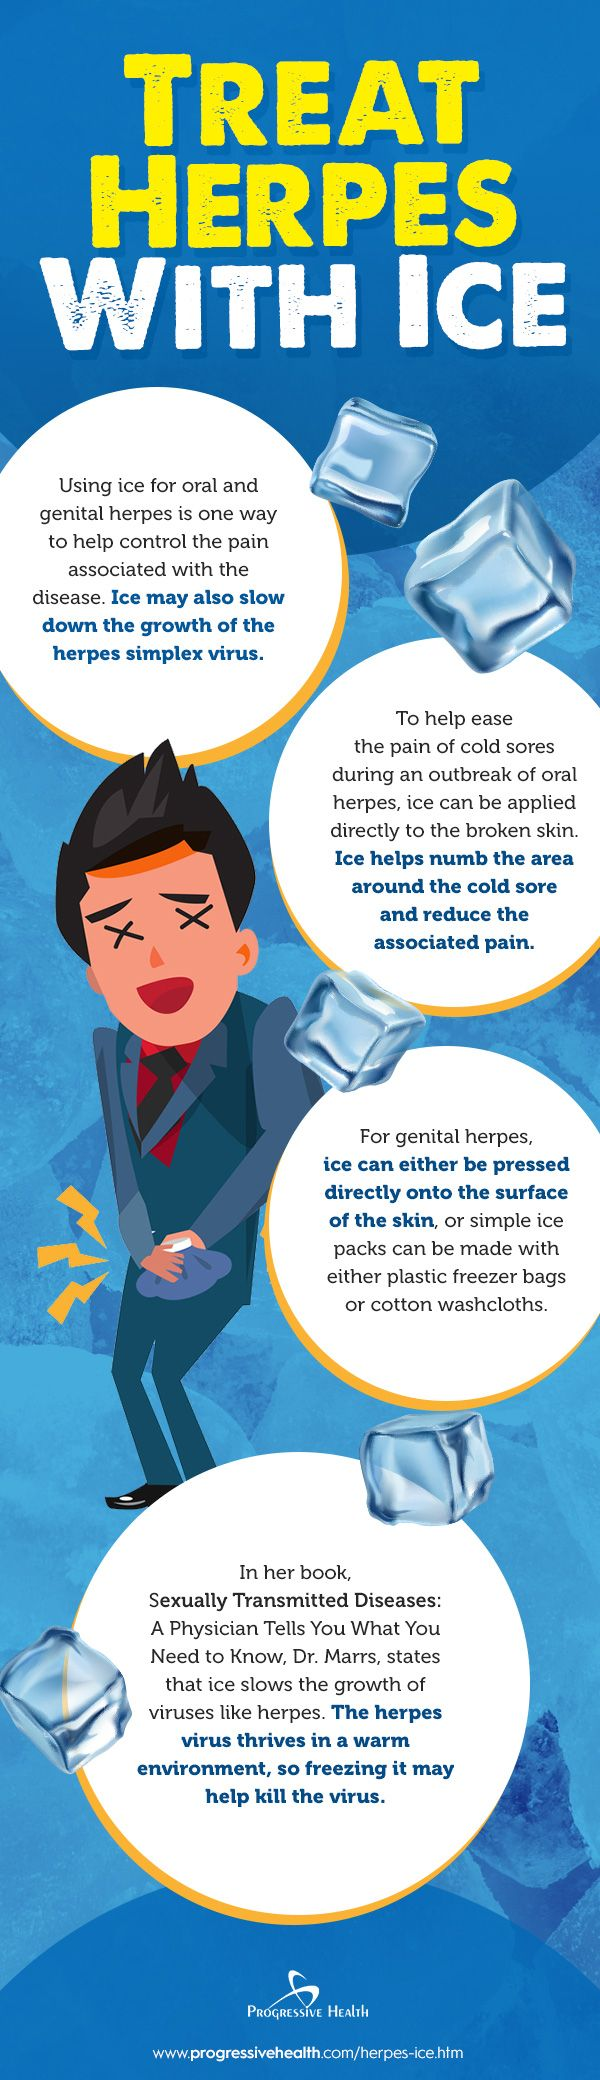 Does Ice Help Treat Herpes? - pinphotos info